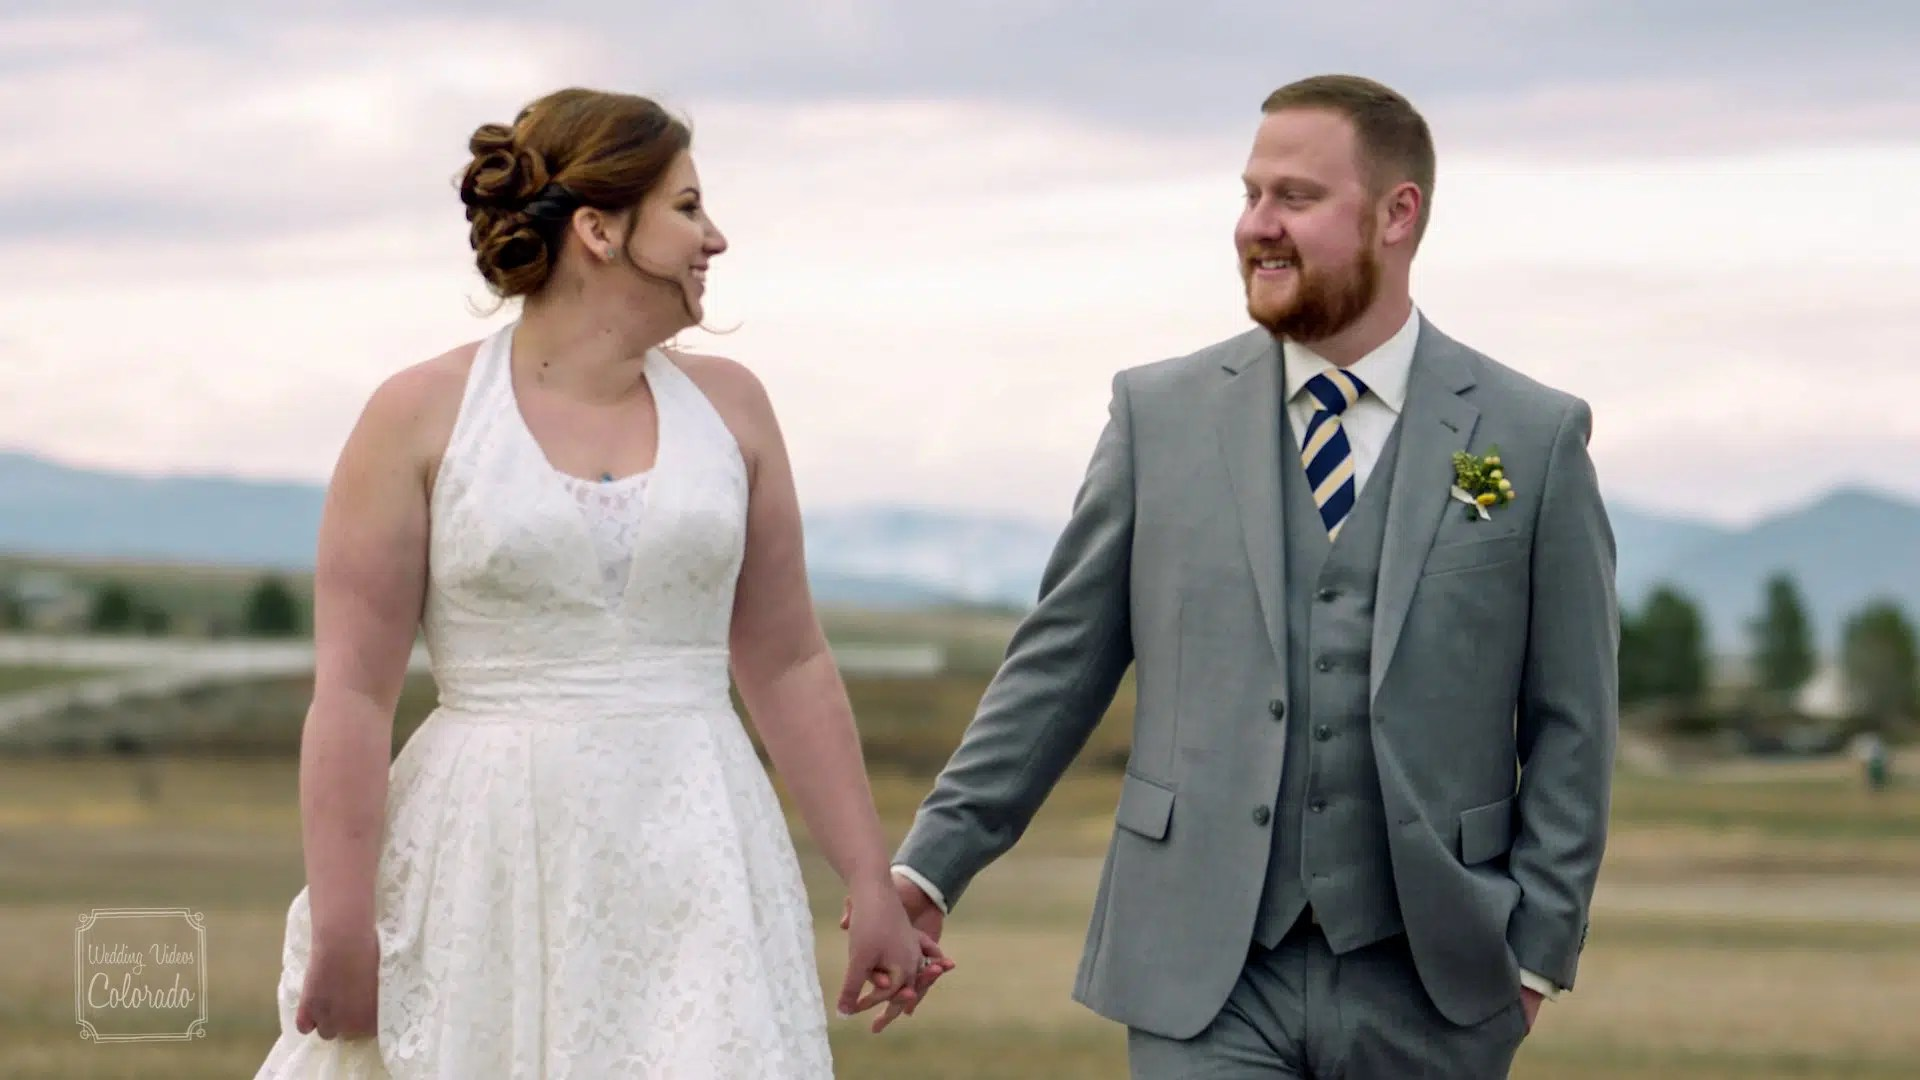 Mathew Rachael intimate wedding video